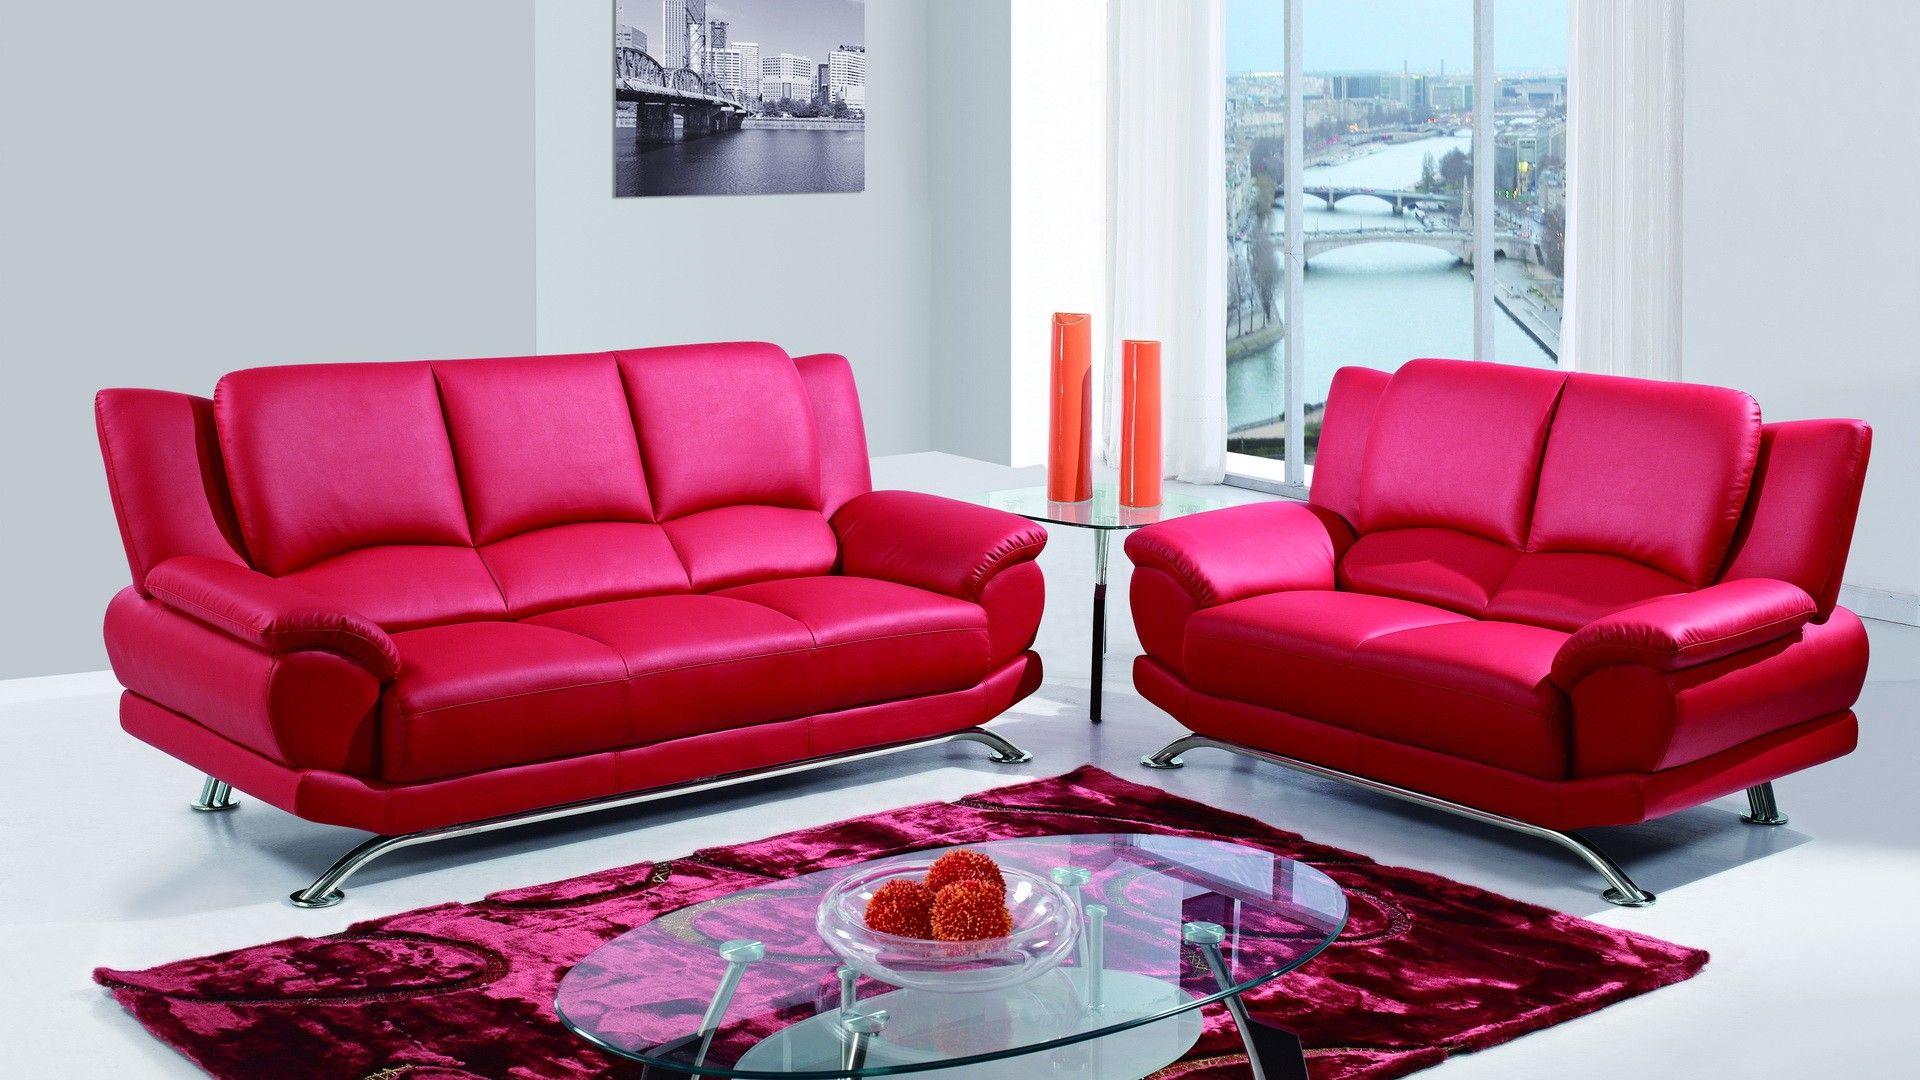 sofas sectional cheap living furniture and chaise simmons sofa full lots upholstery big loveseat white sets of ashley couch leather set size room